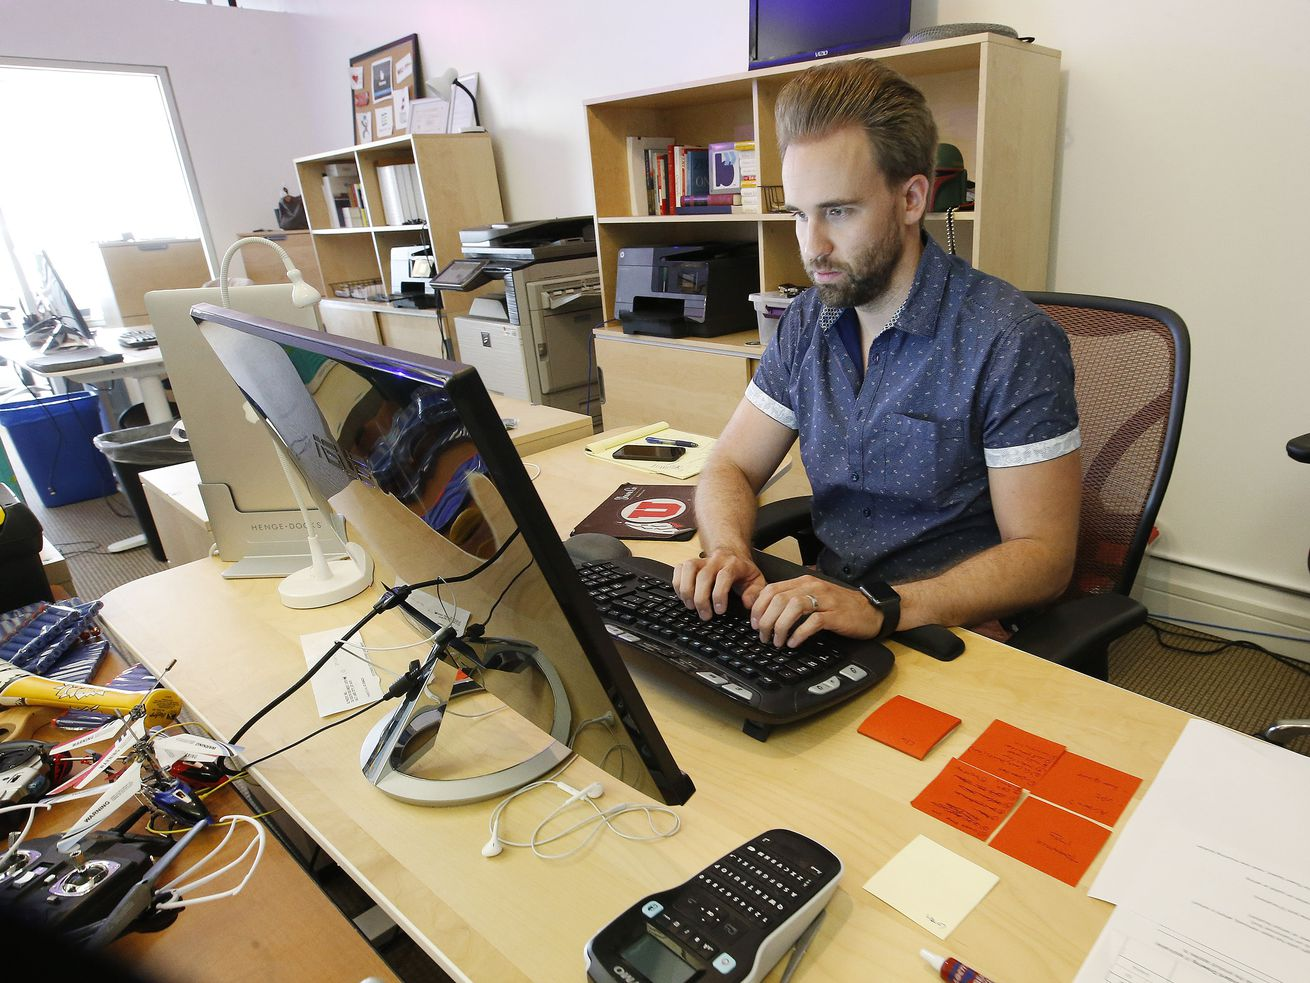 Blyncsy engineer Dallin Starr works at the company's office in Salt Lake City in this July 14, 2017, file photo. Blyncsy has developed anonymized tracking of cellphones combined with data crunching to help solve transportation and movement dilemmas.